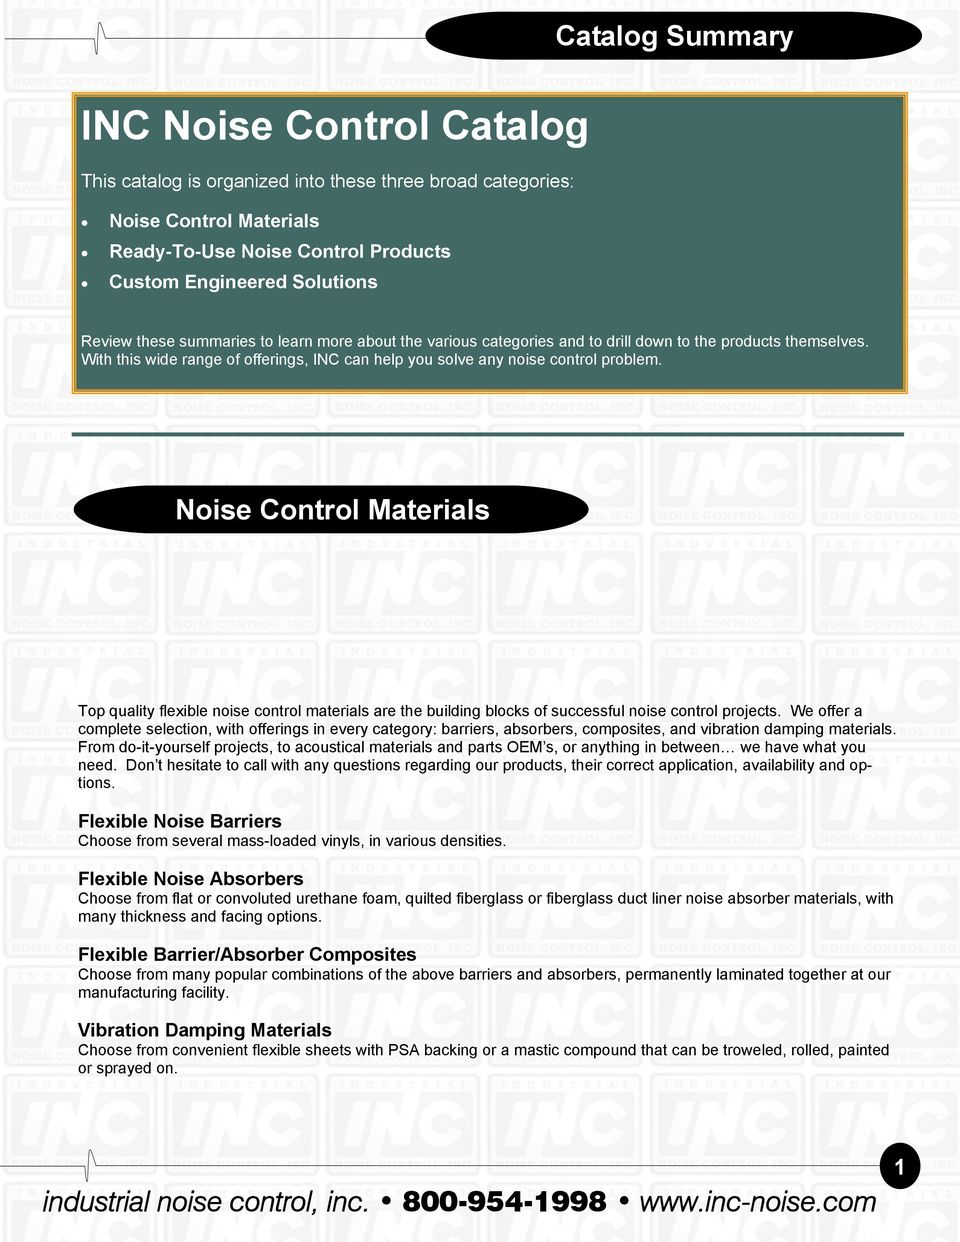 Noise Control Materials Top quality flexible noise control materials are the building blocks of successful noise control projects.